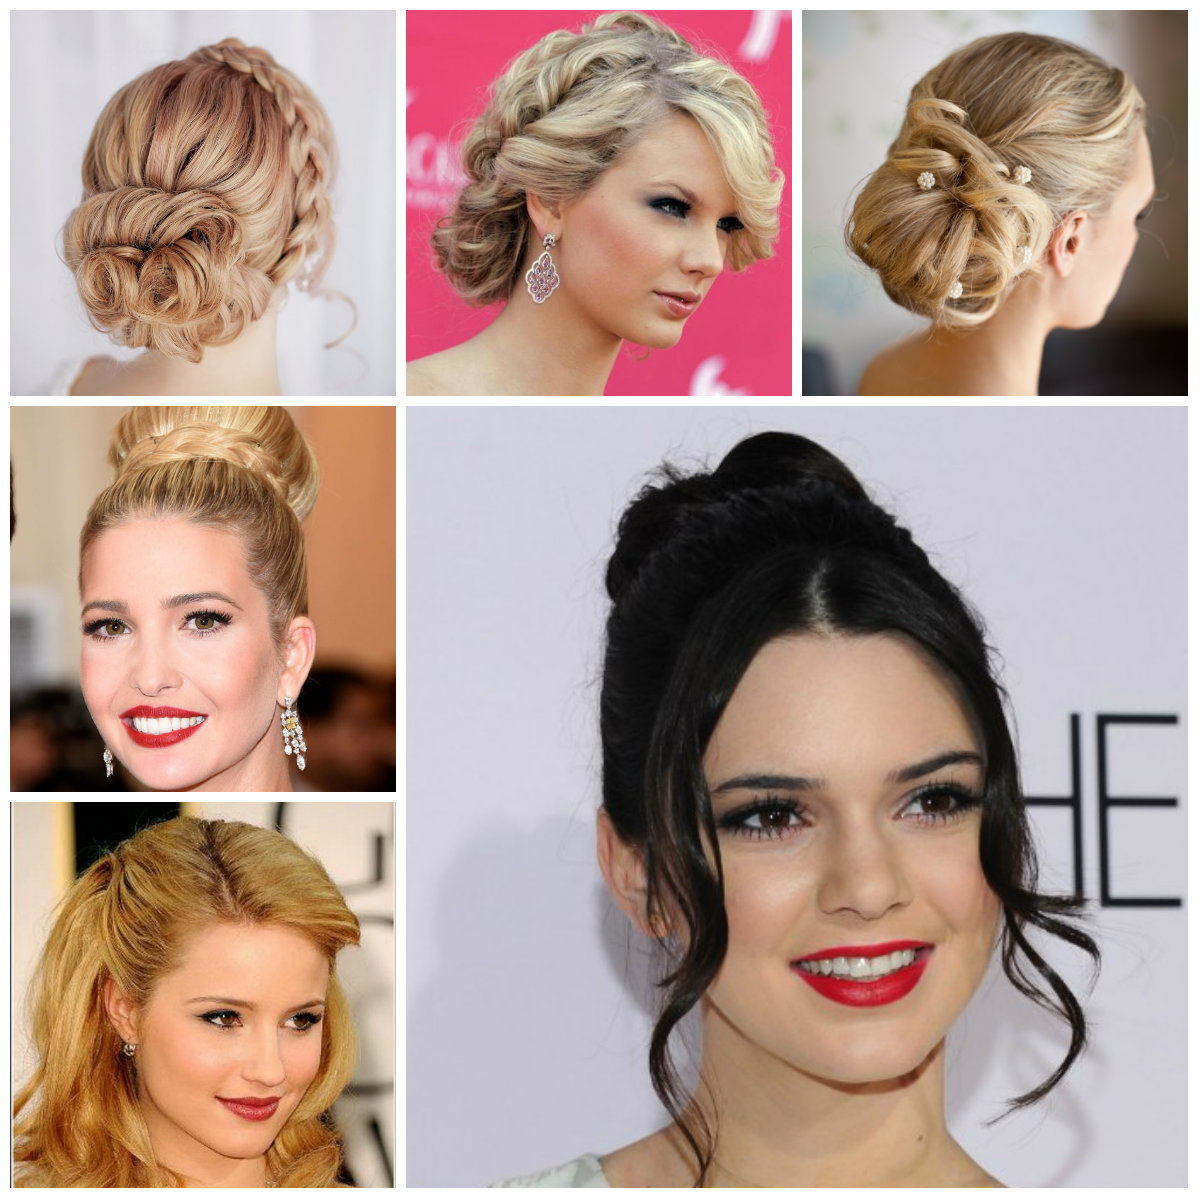 Strange Prom Updo Hairstyles To Try In 2016 2017 Haircuts Hairstyles Short Hairstyles For Black Women Fulllsitofus